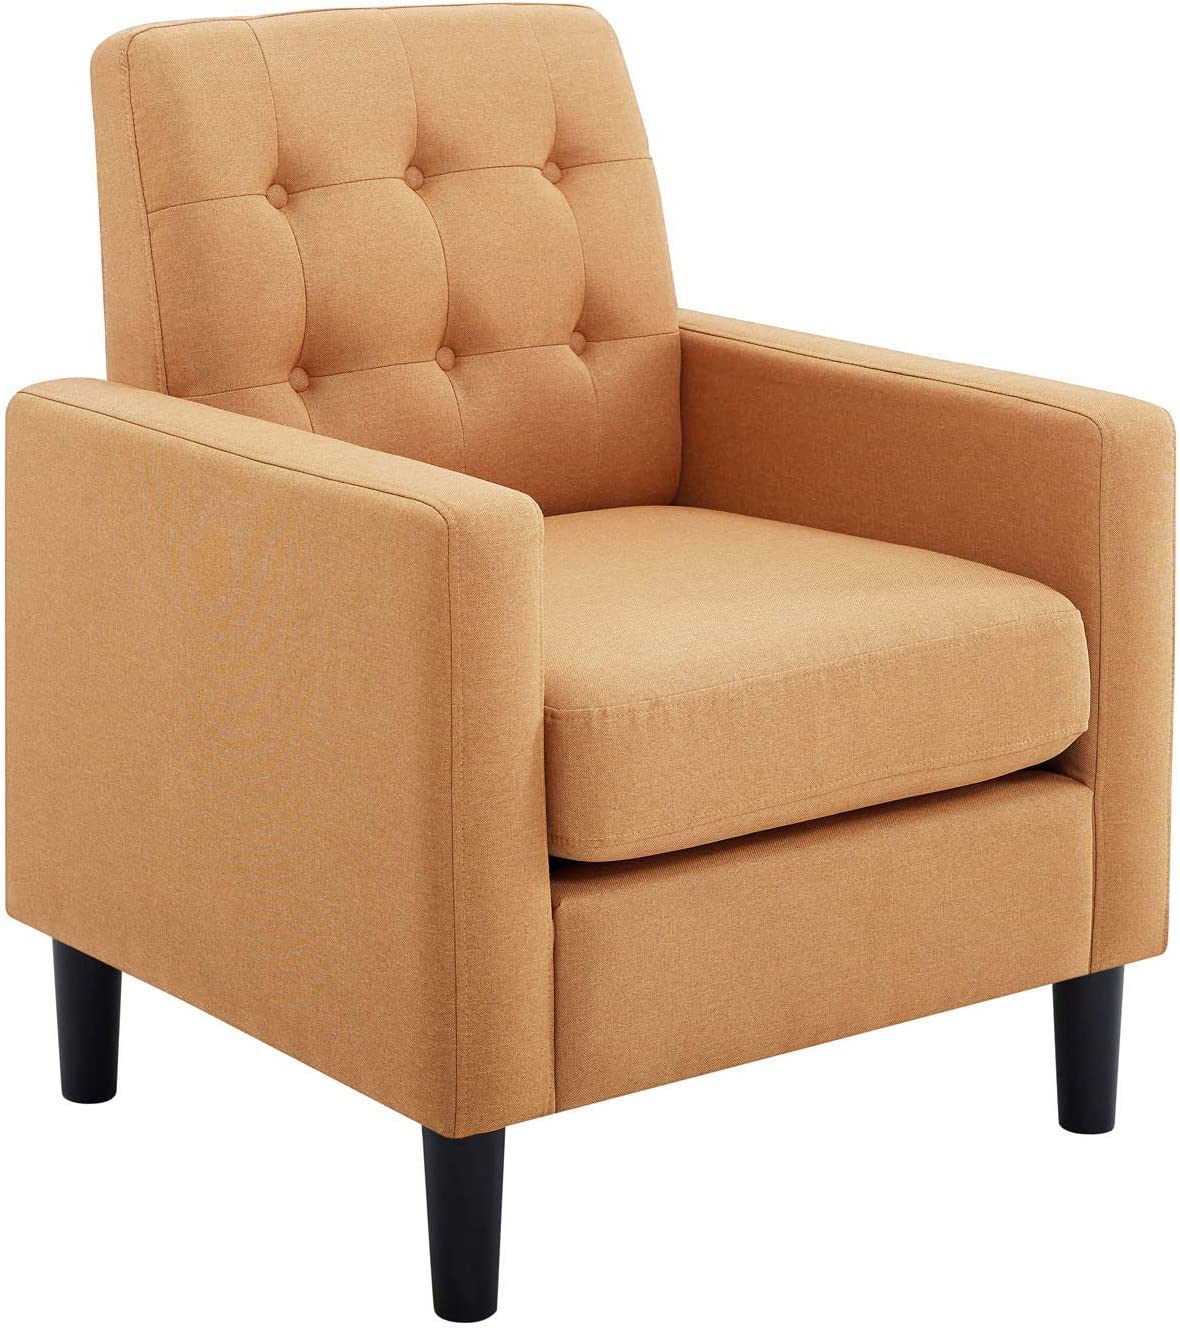 BEEY Modern Accent Armchair Sofa Chair Arm Chair Leisure Sofa with Removable Cushioned Seat Thick Seat Backrest for Bedroom Living Room Office